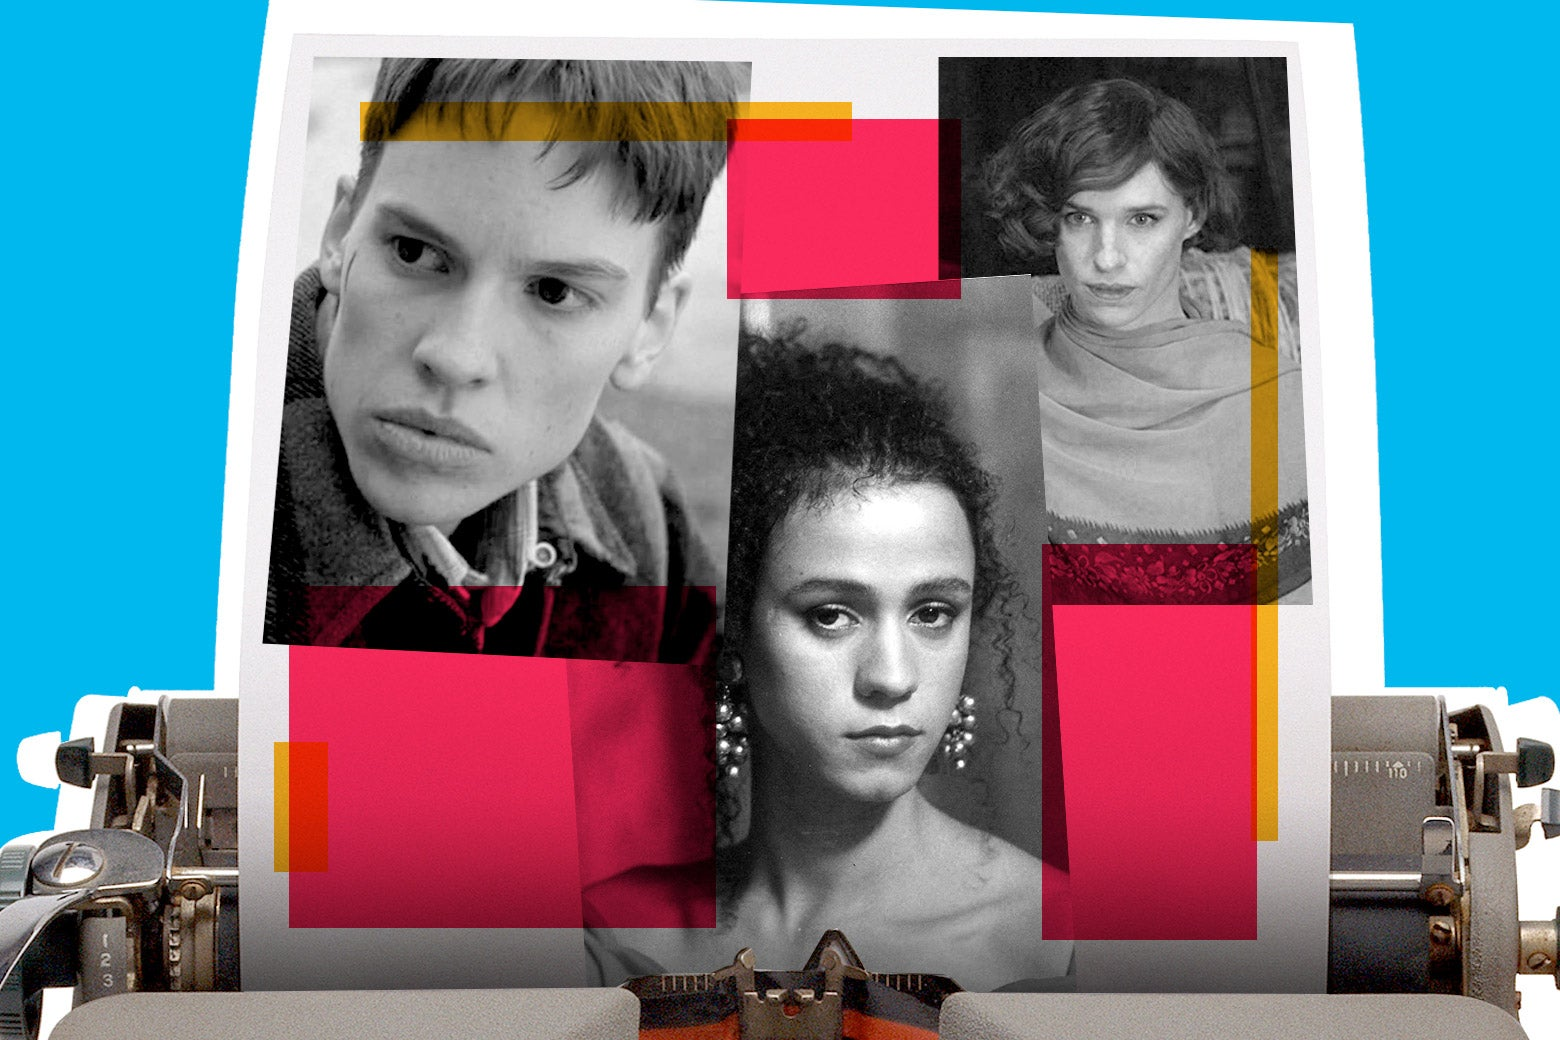 Photo illustration: Hillary Swank in Boys Don't Cry, Jaye Davidson in The Crying Game, and Eddie Redmayne in The Danish Girl